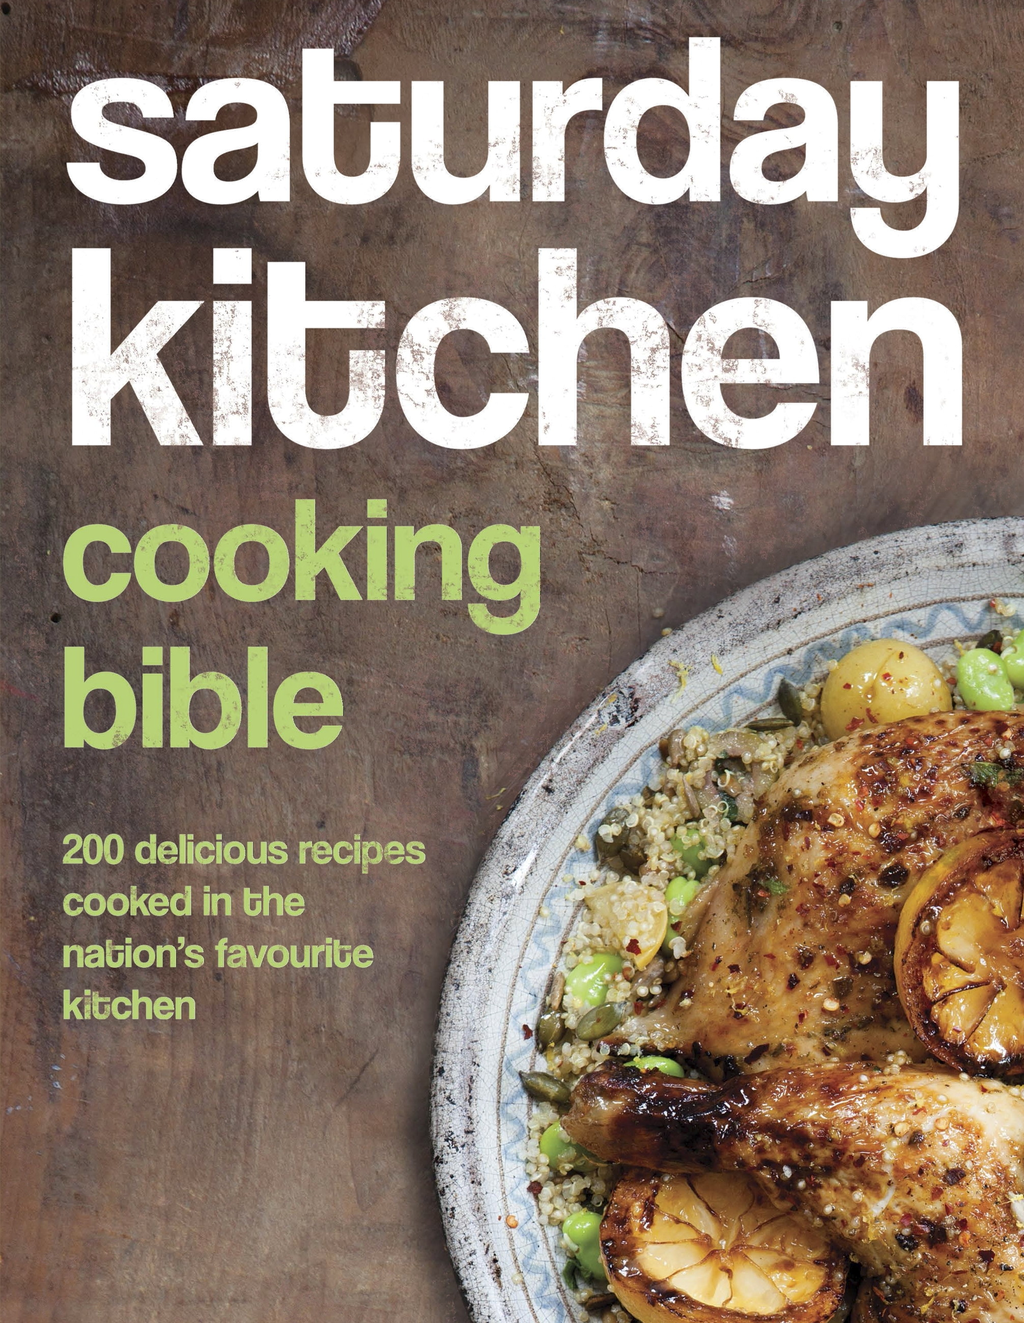 Saturday Kitchen Cooking Bible 200 Delicious Recipes Cooked in the Nation's Favourite Kitchen